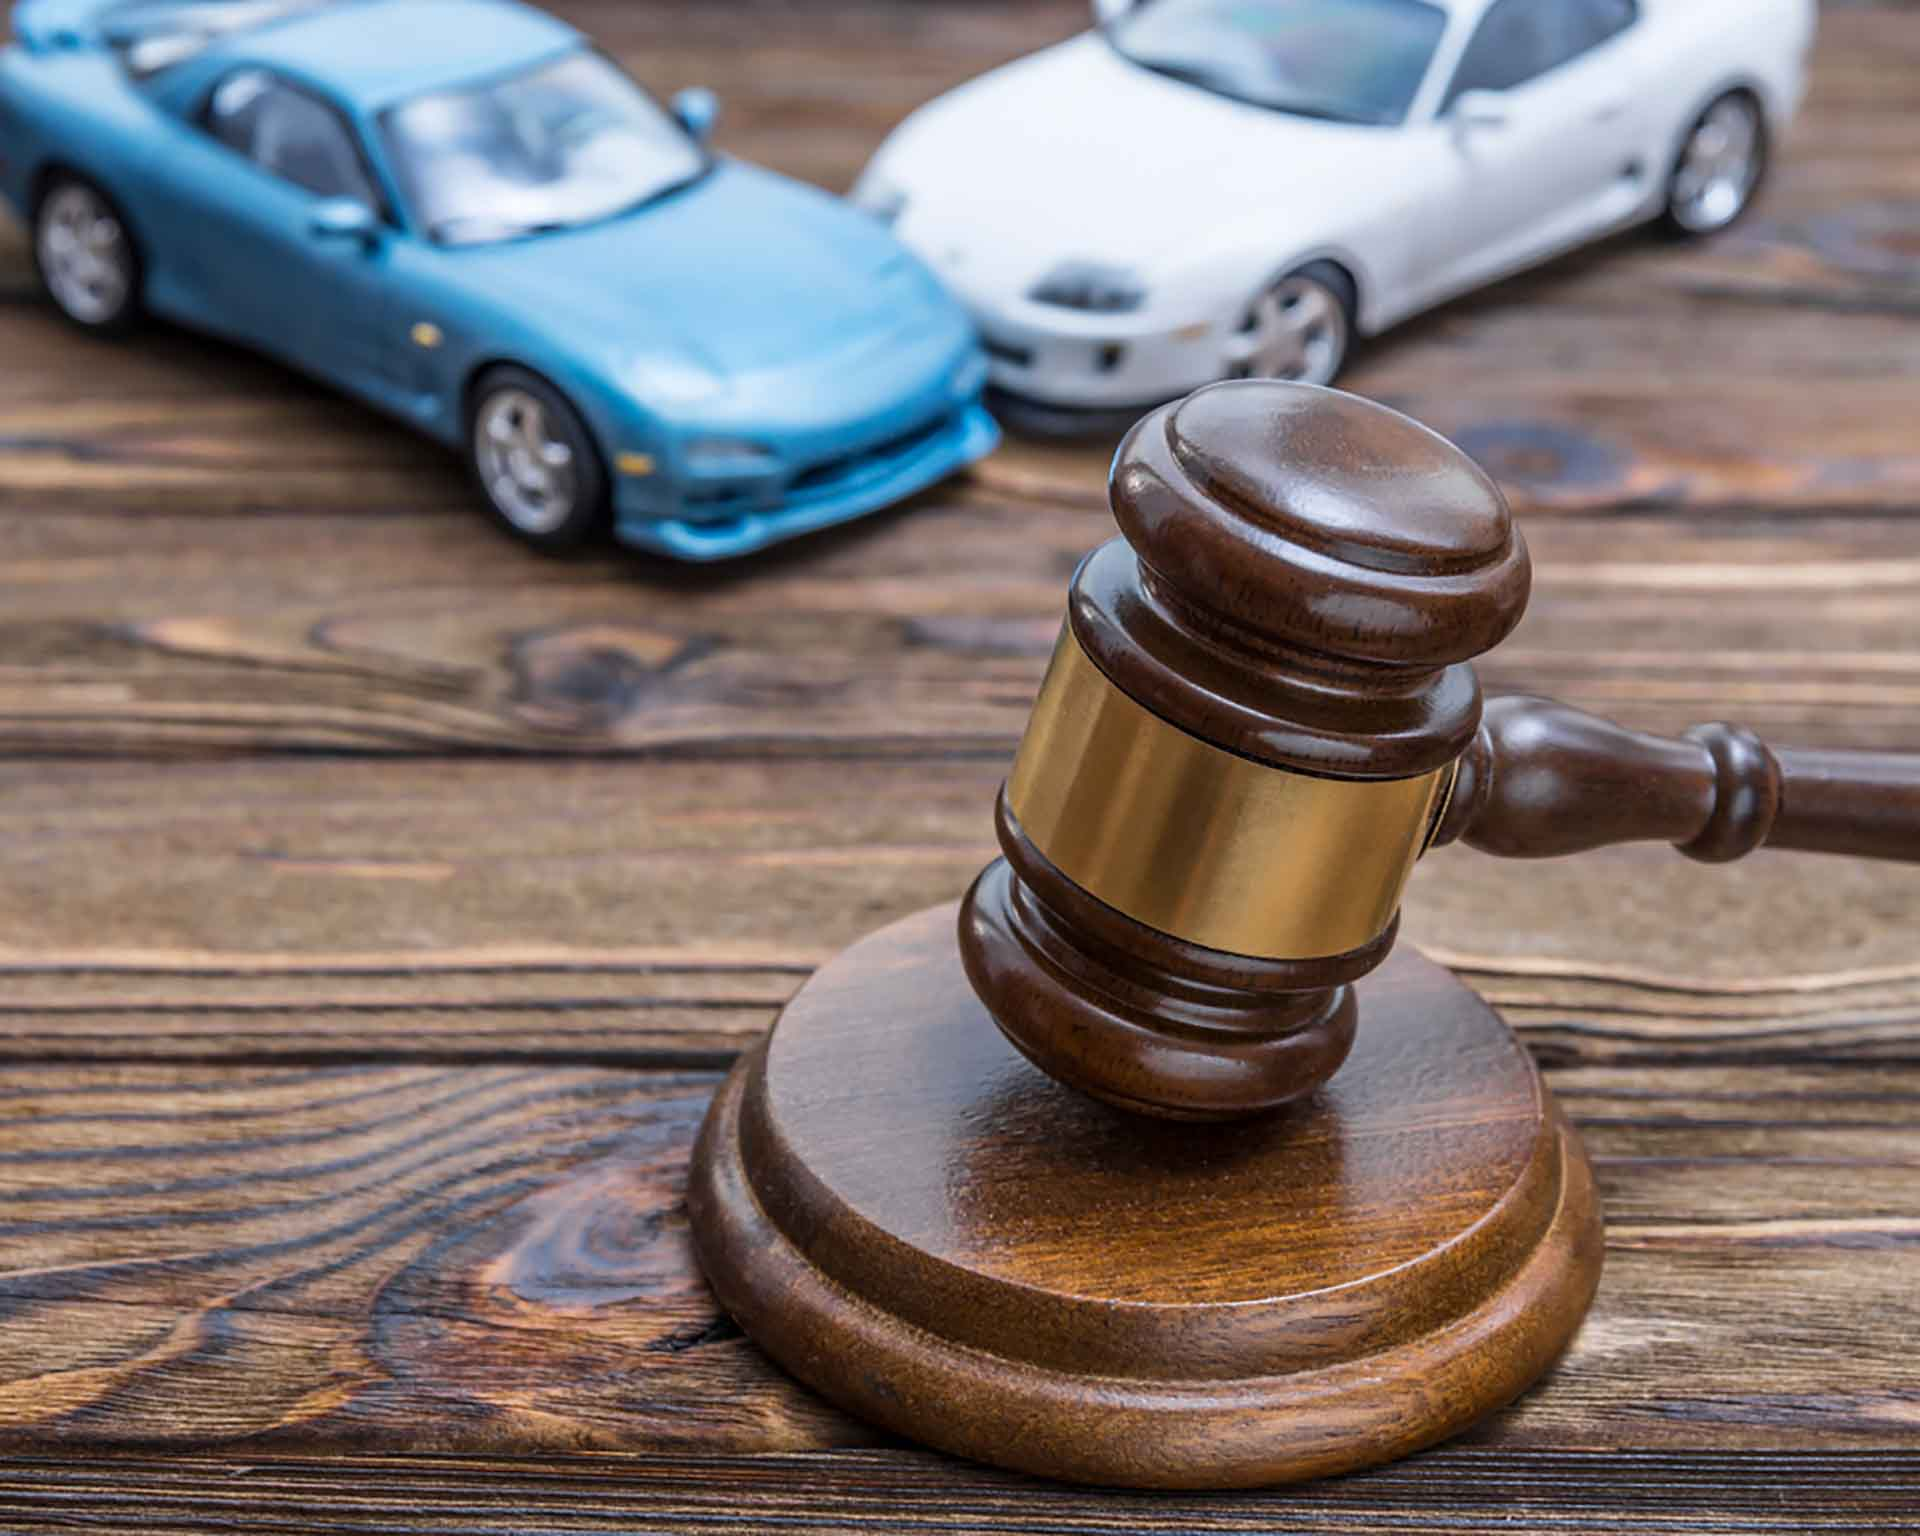 why do dealers buy cars at auction